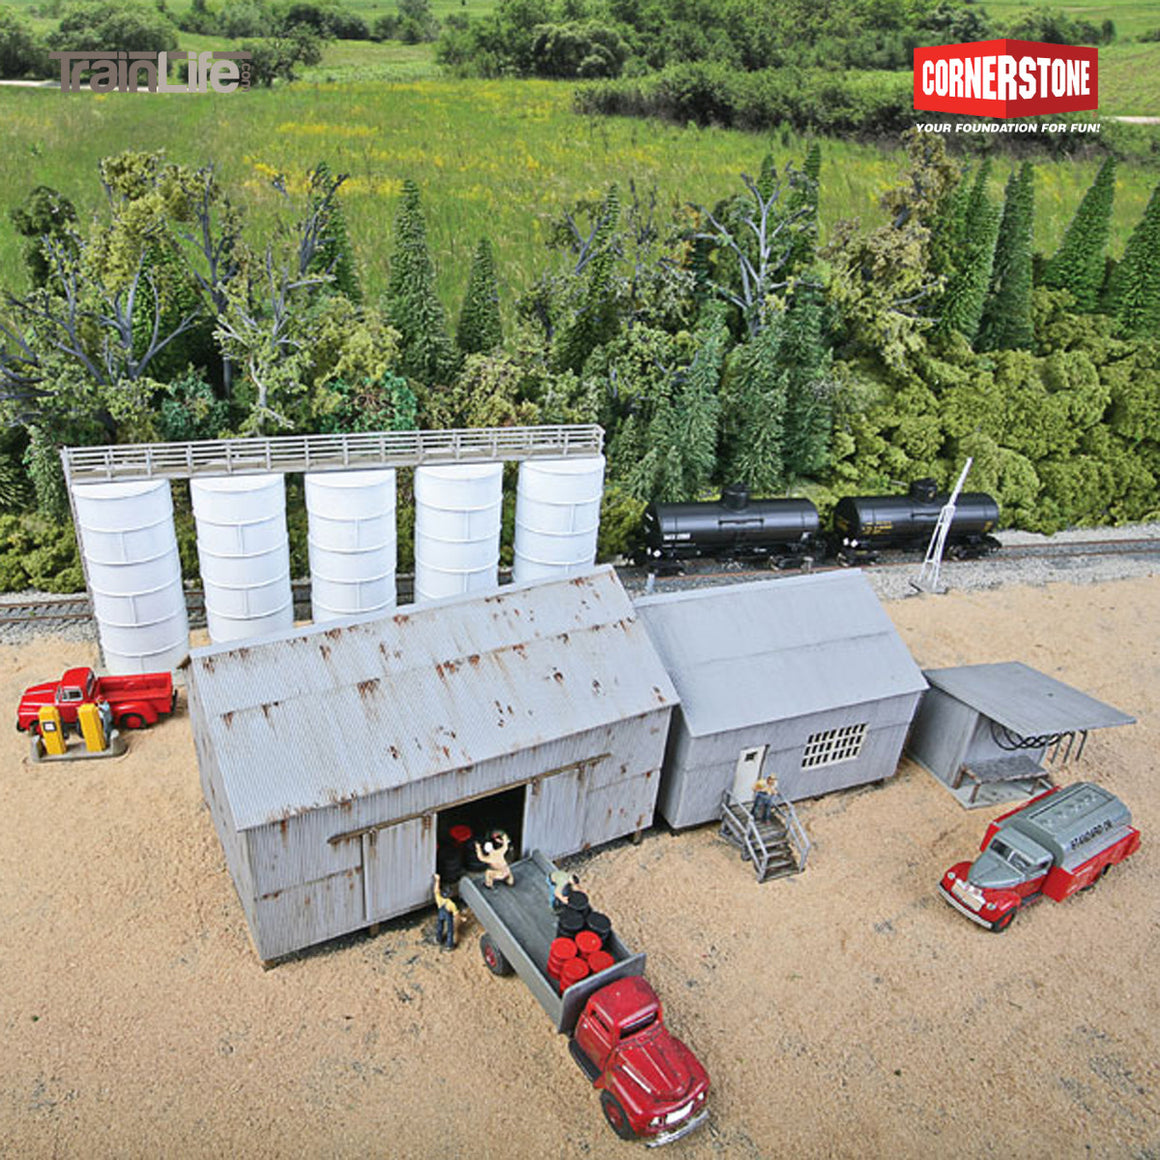 HO Scale: Trackside Oil Dealer with Storage Tanks